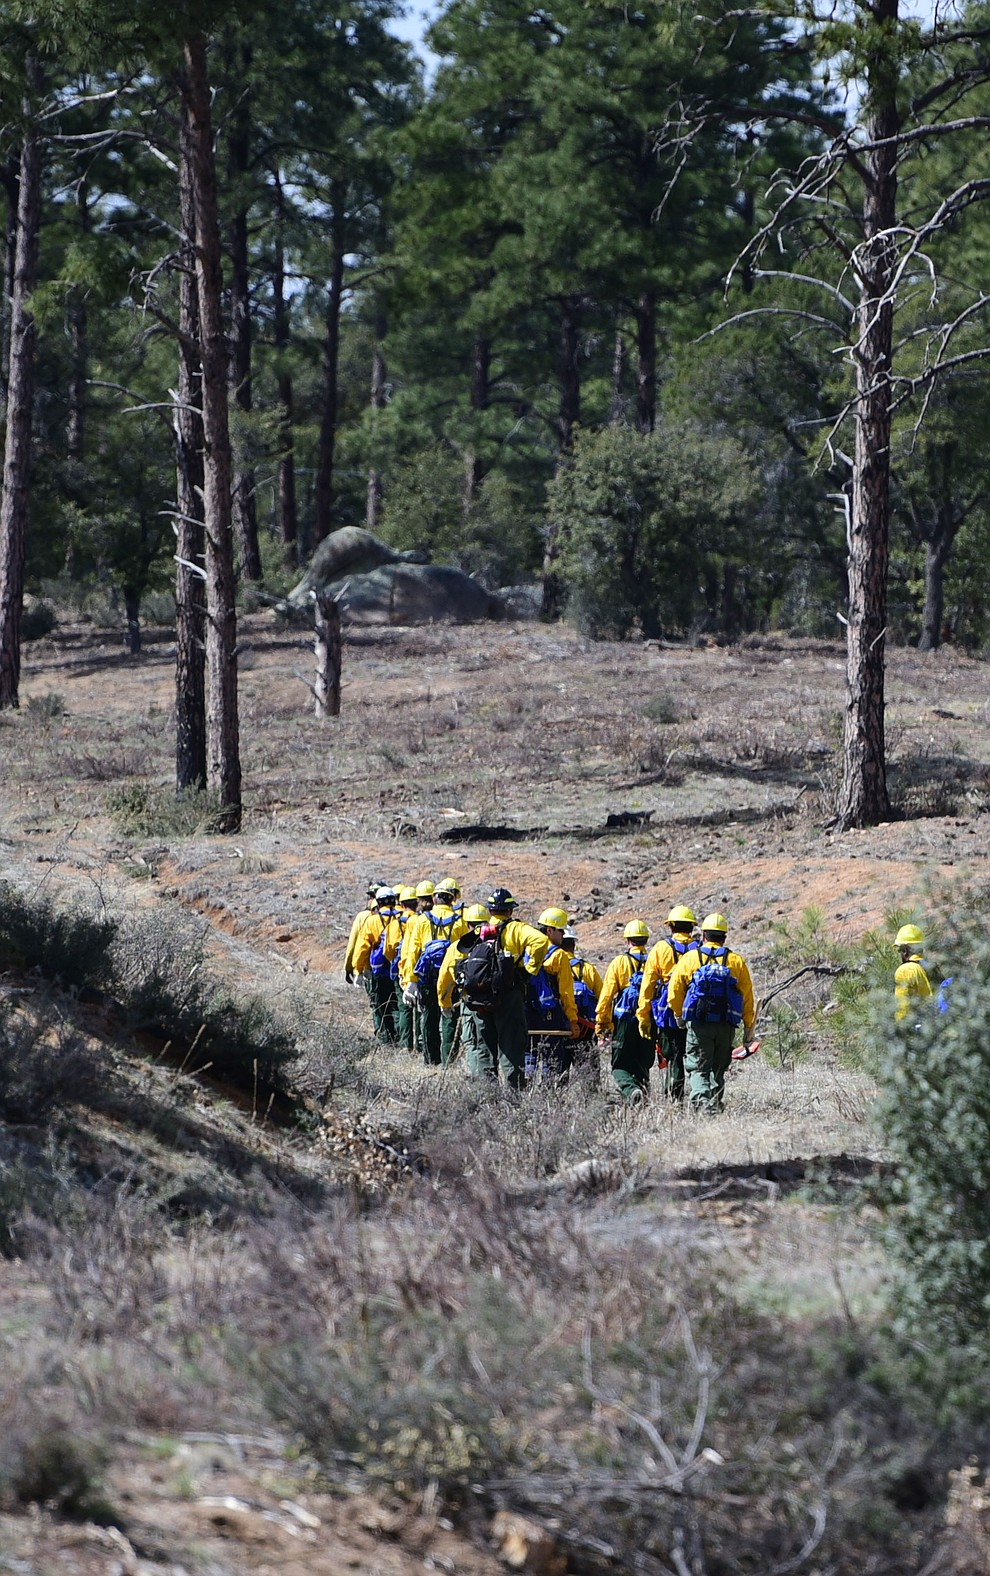 S130/190 Basic Wildland Firefighting students head out to cut line during the Arizona Wildfire Academy field day Wednesday, March 15 near the Iron Spring Road and Skyline Drive area in Prescott. (Les Stukenberg/The Daily Courier)